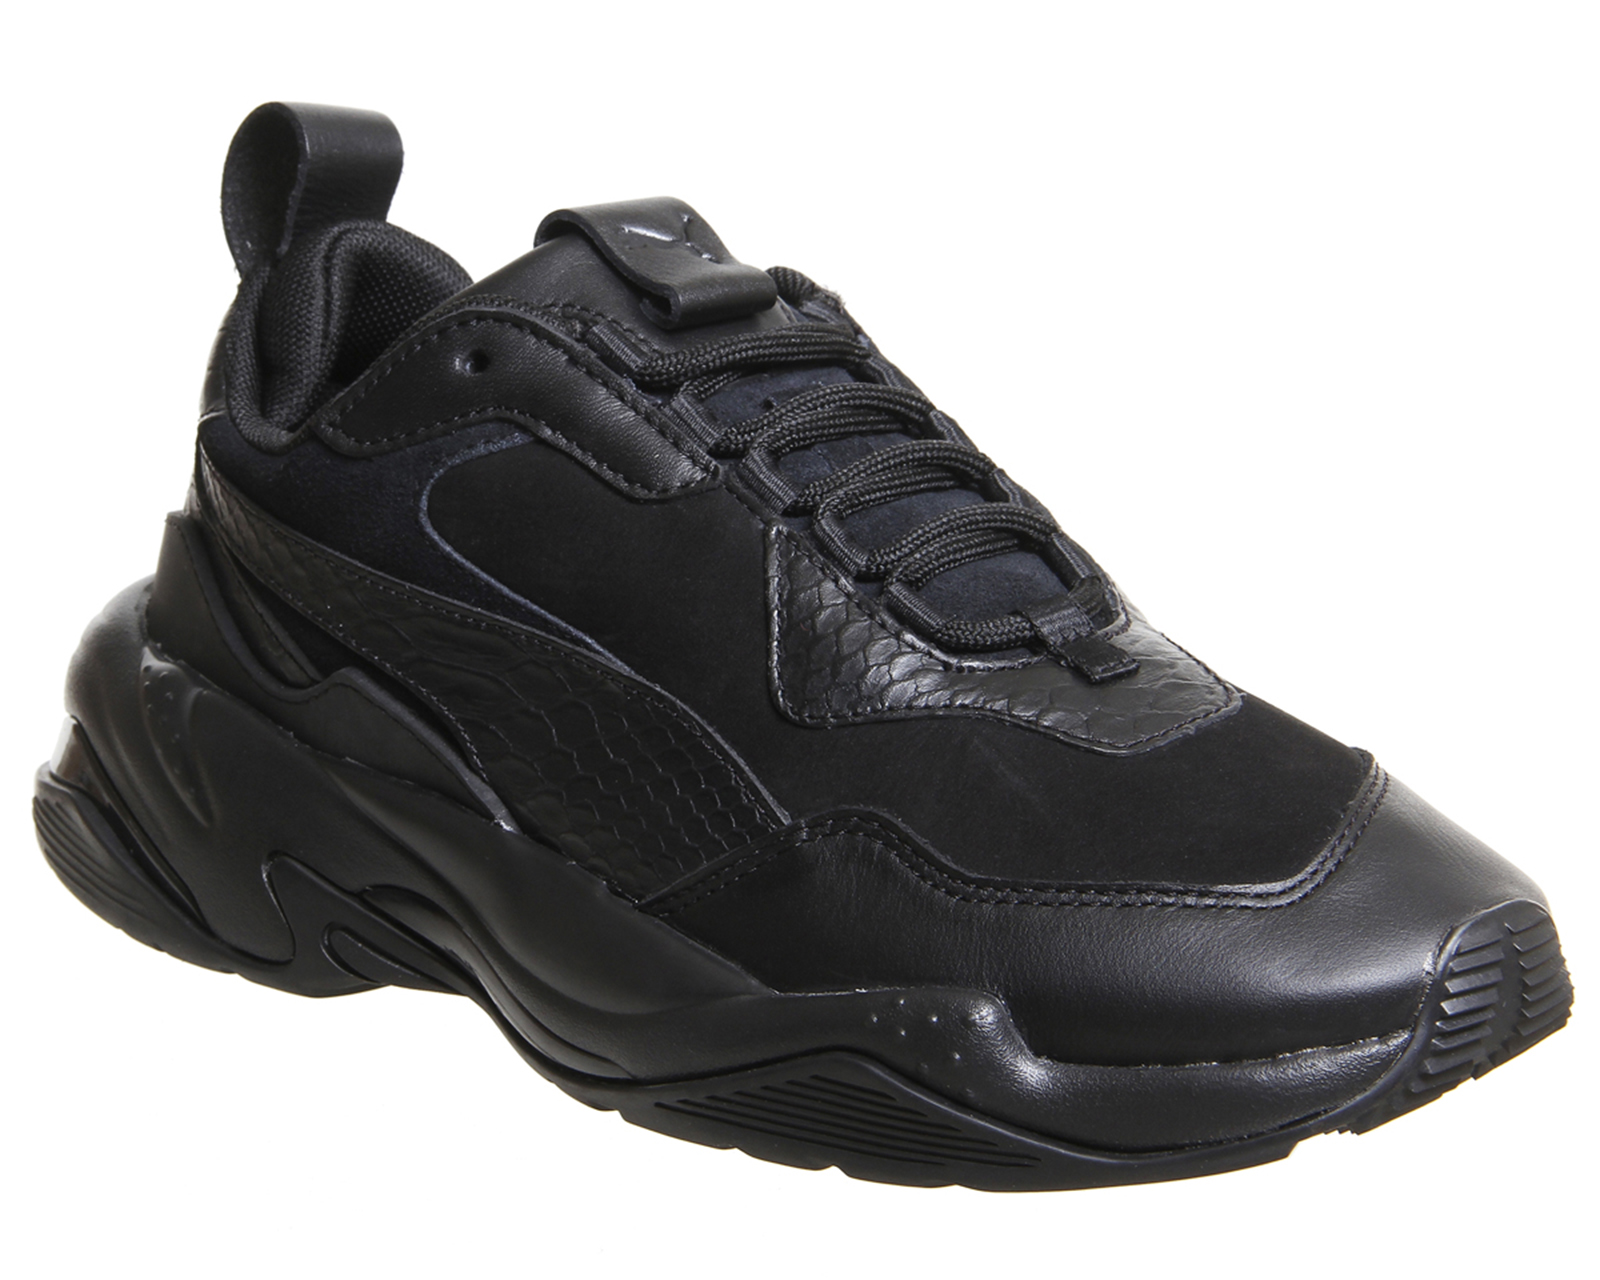 b11b2c8841c8c2 Sentinel Puma Thunder Desert Trainers Puma Black Trainers Shoes